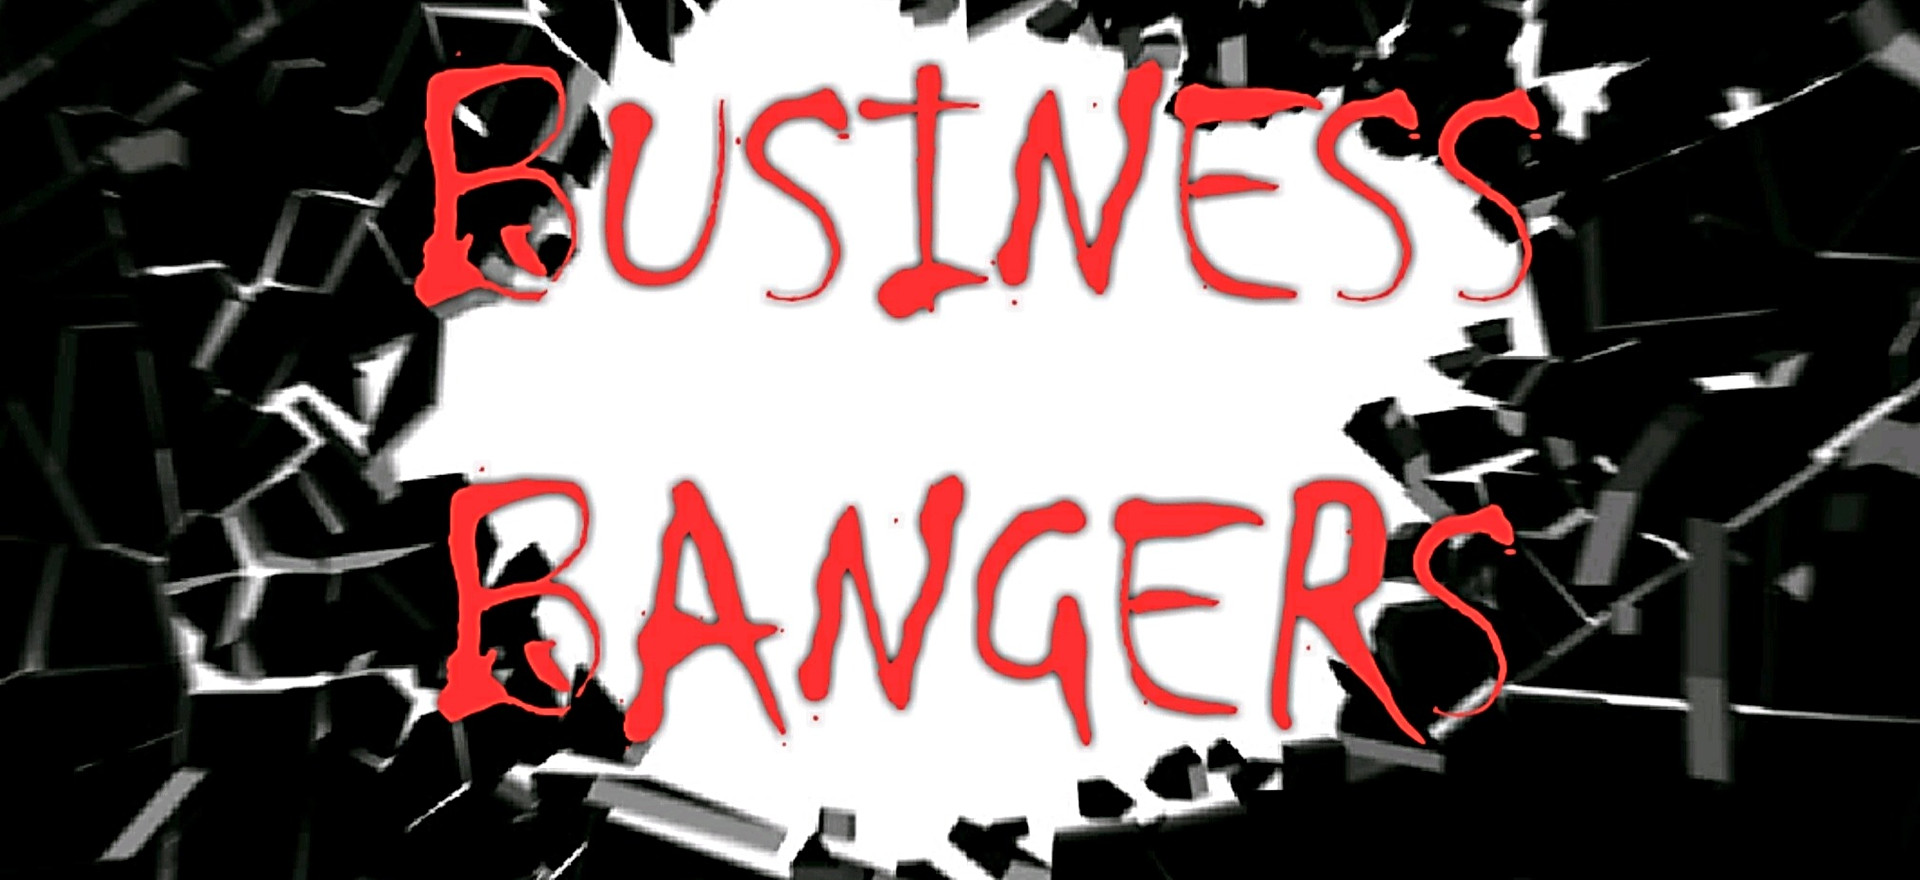 Business Bangers (A division of Life Support)